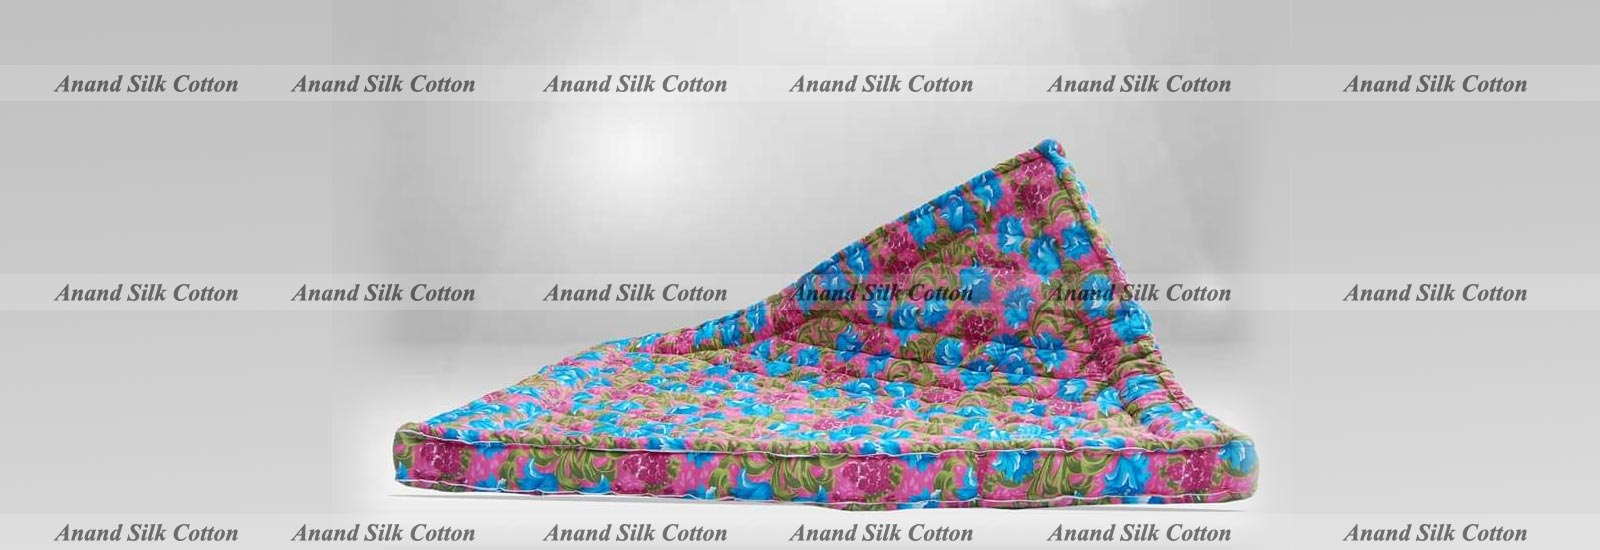 ANAND SILK COTTON